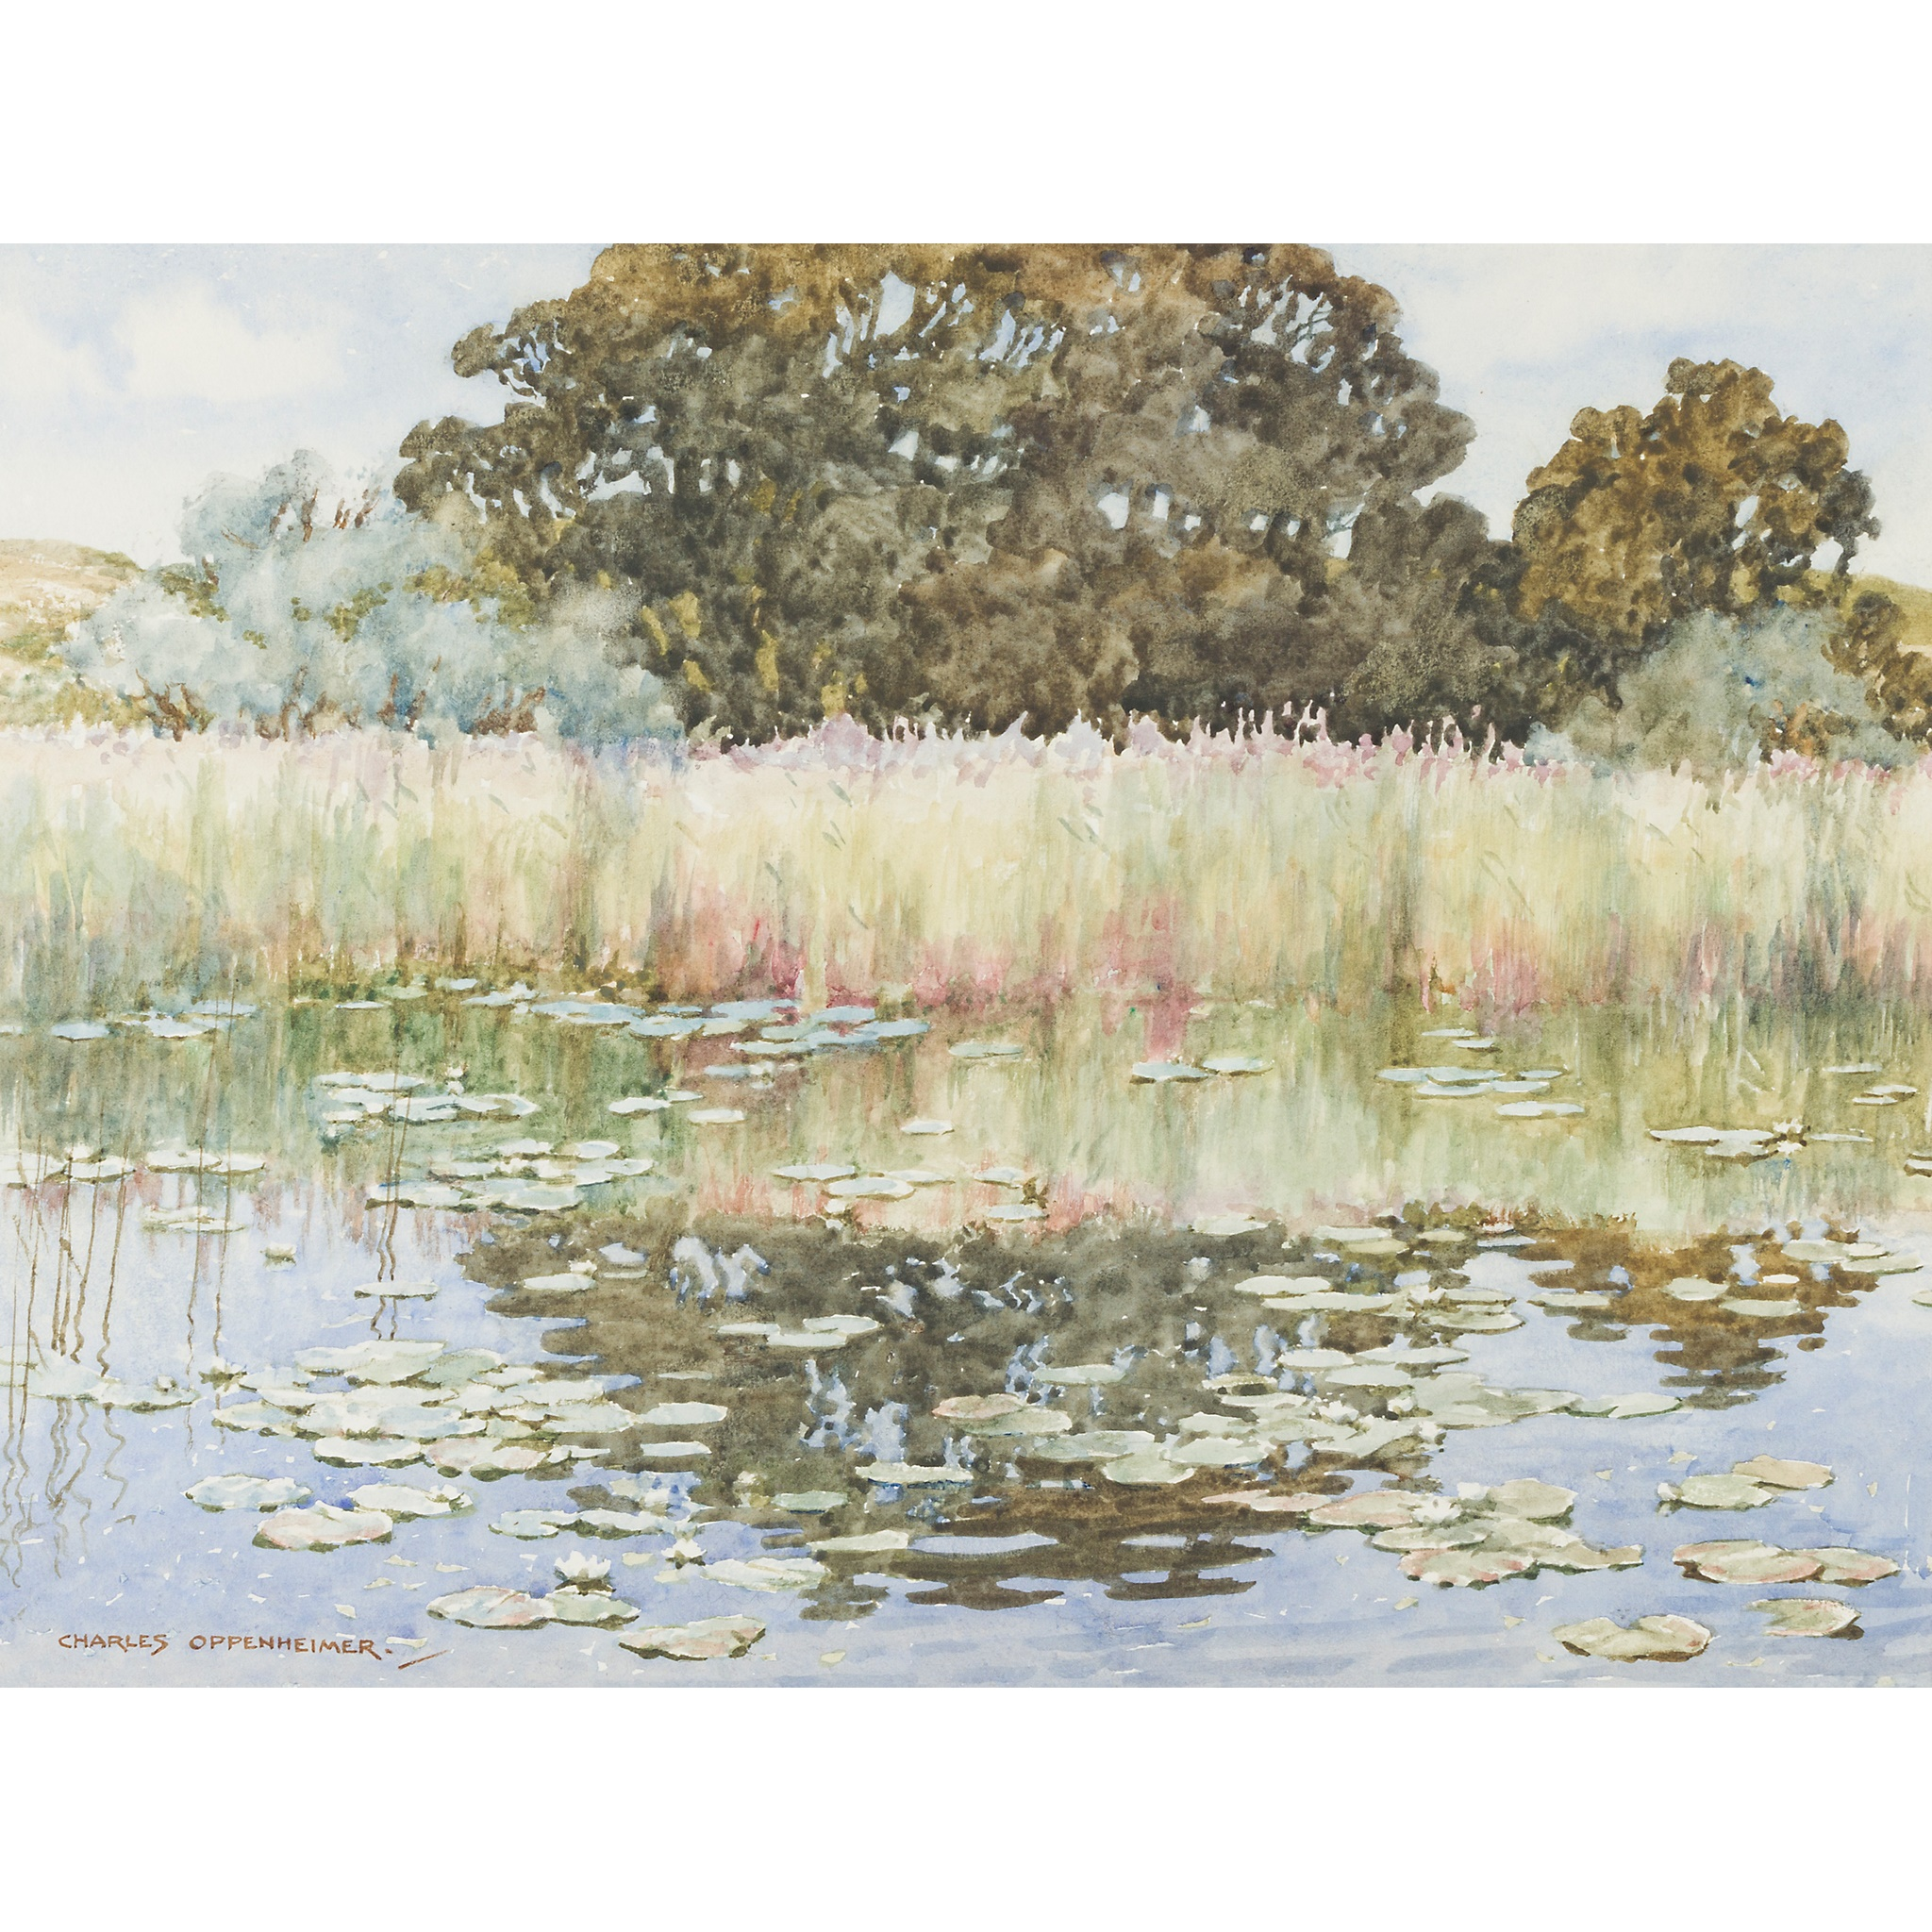 § CHARLES OPPENHEIMER R.S.A., R.S.W (SCOTTISH 1876-1961) THE LILY POND